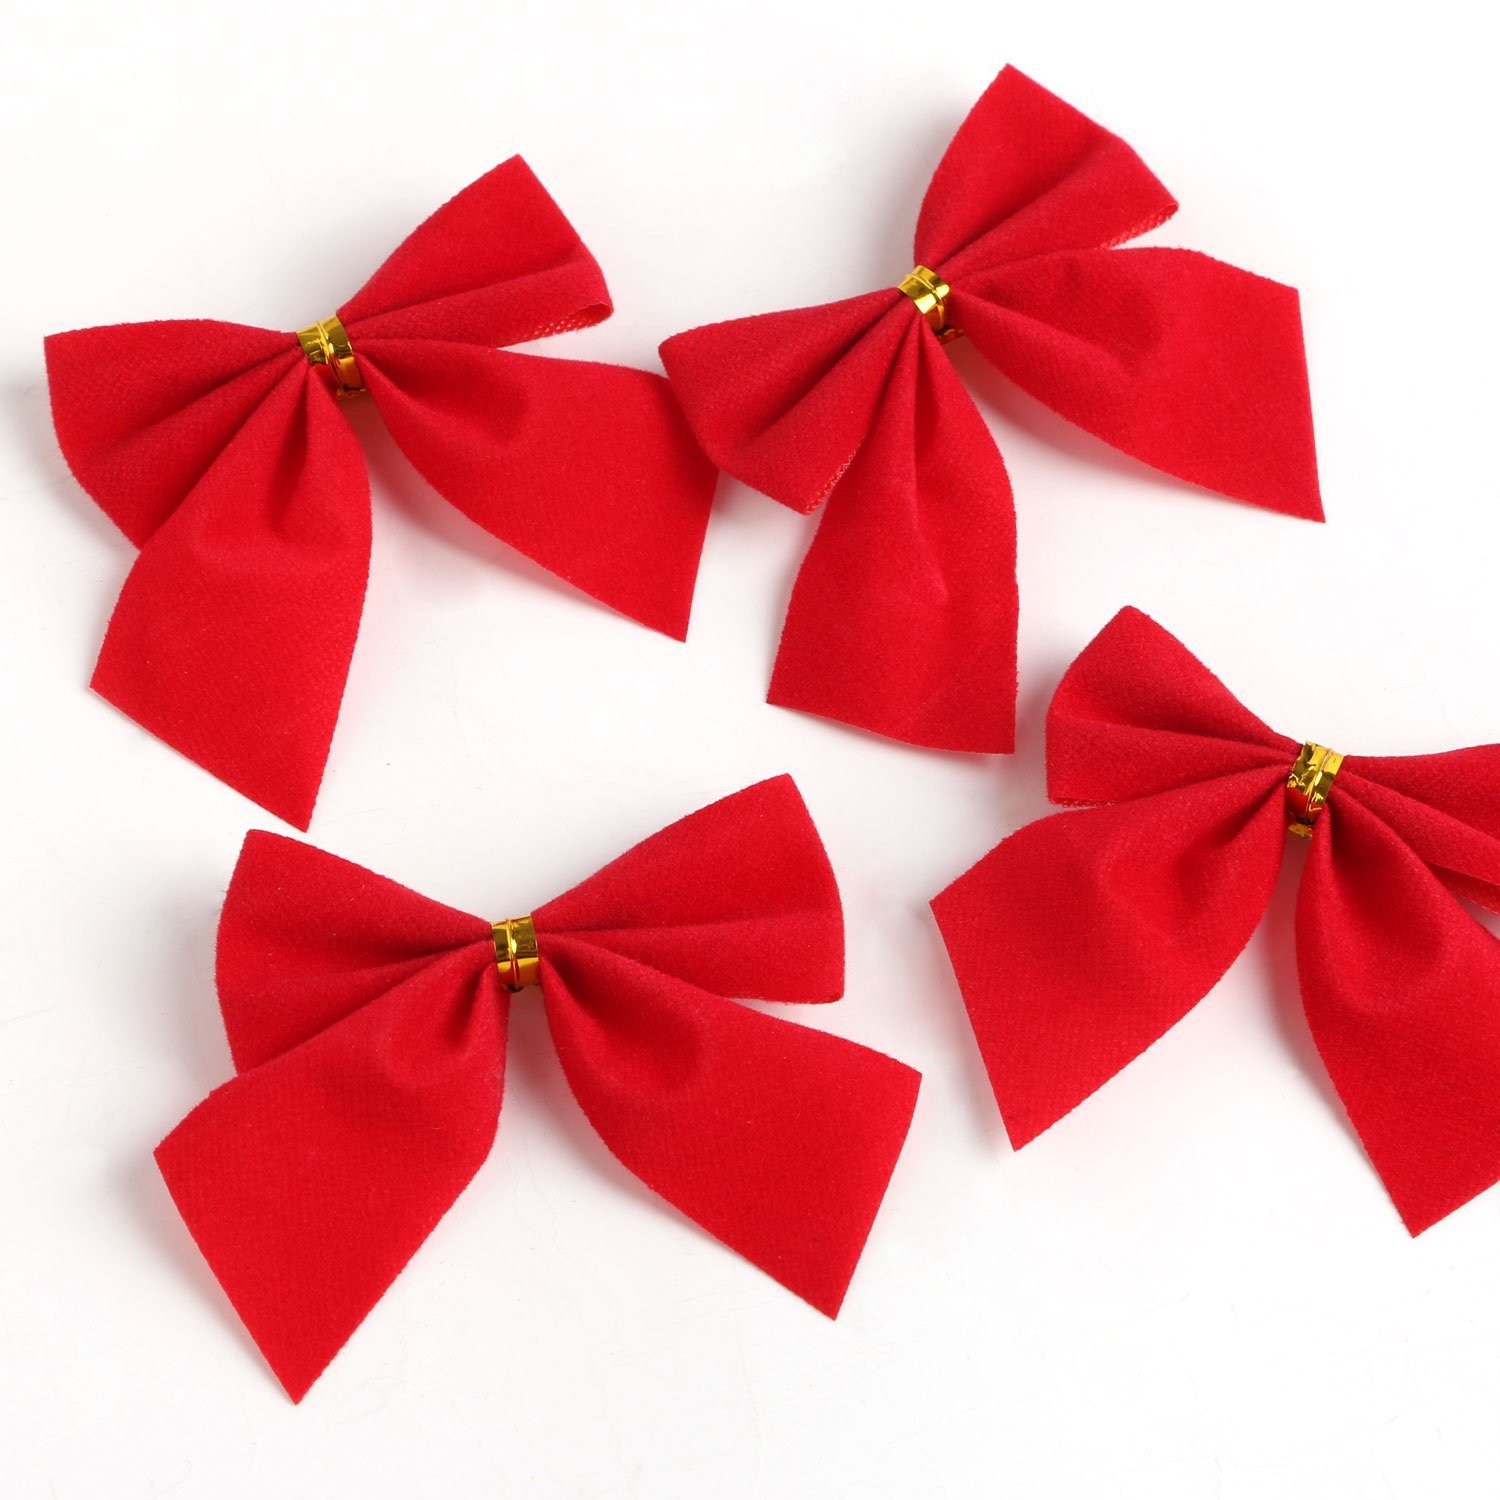 Cheap Christmas Wrapping Bows, find Christmas Wrapping Bows deals on ...